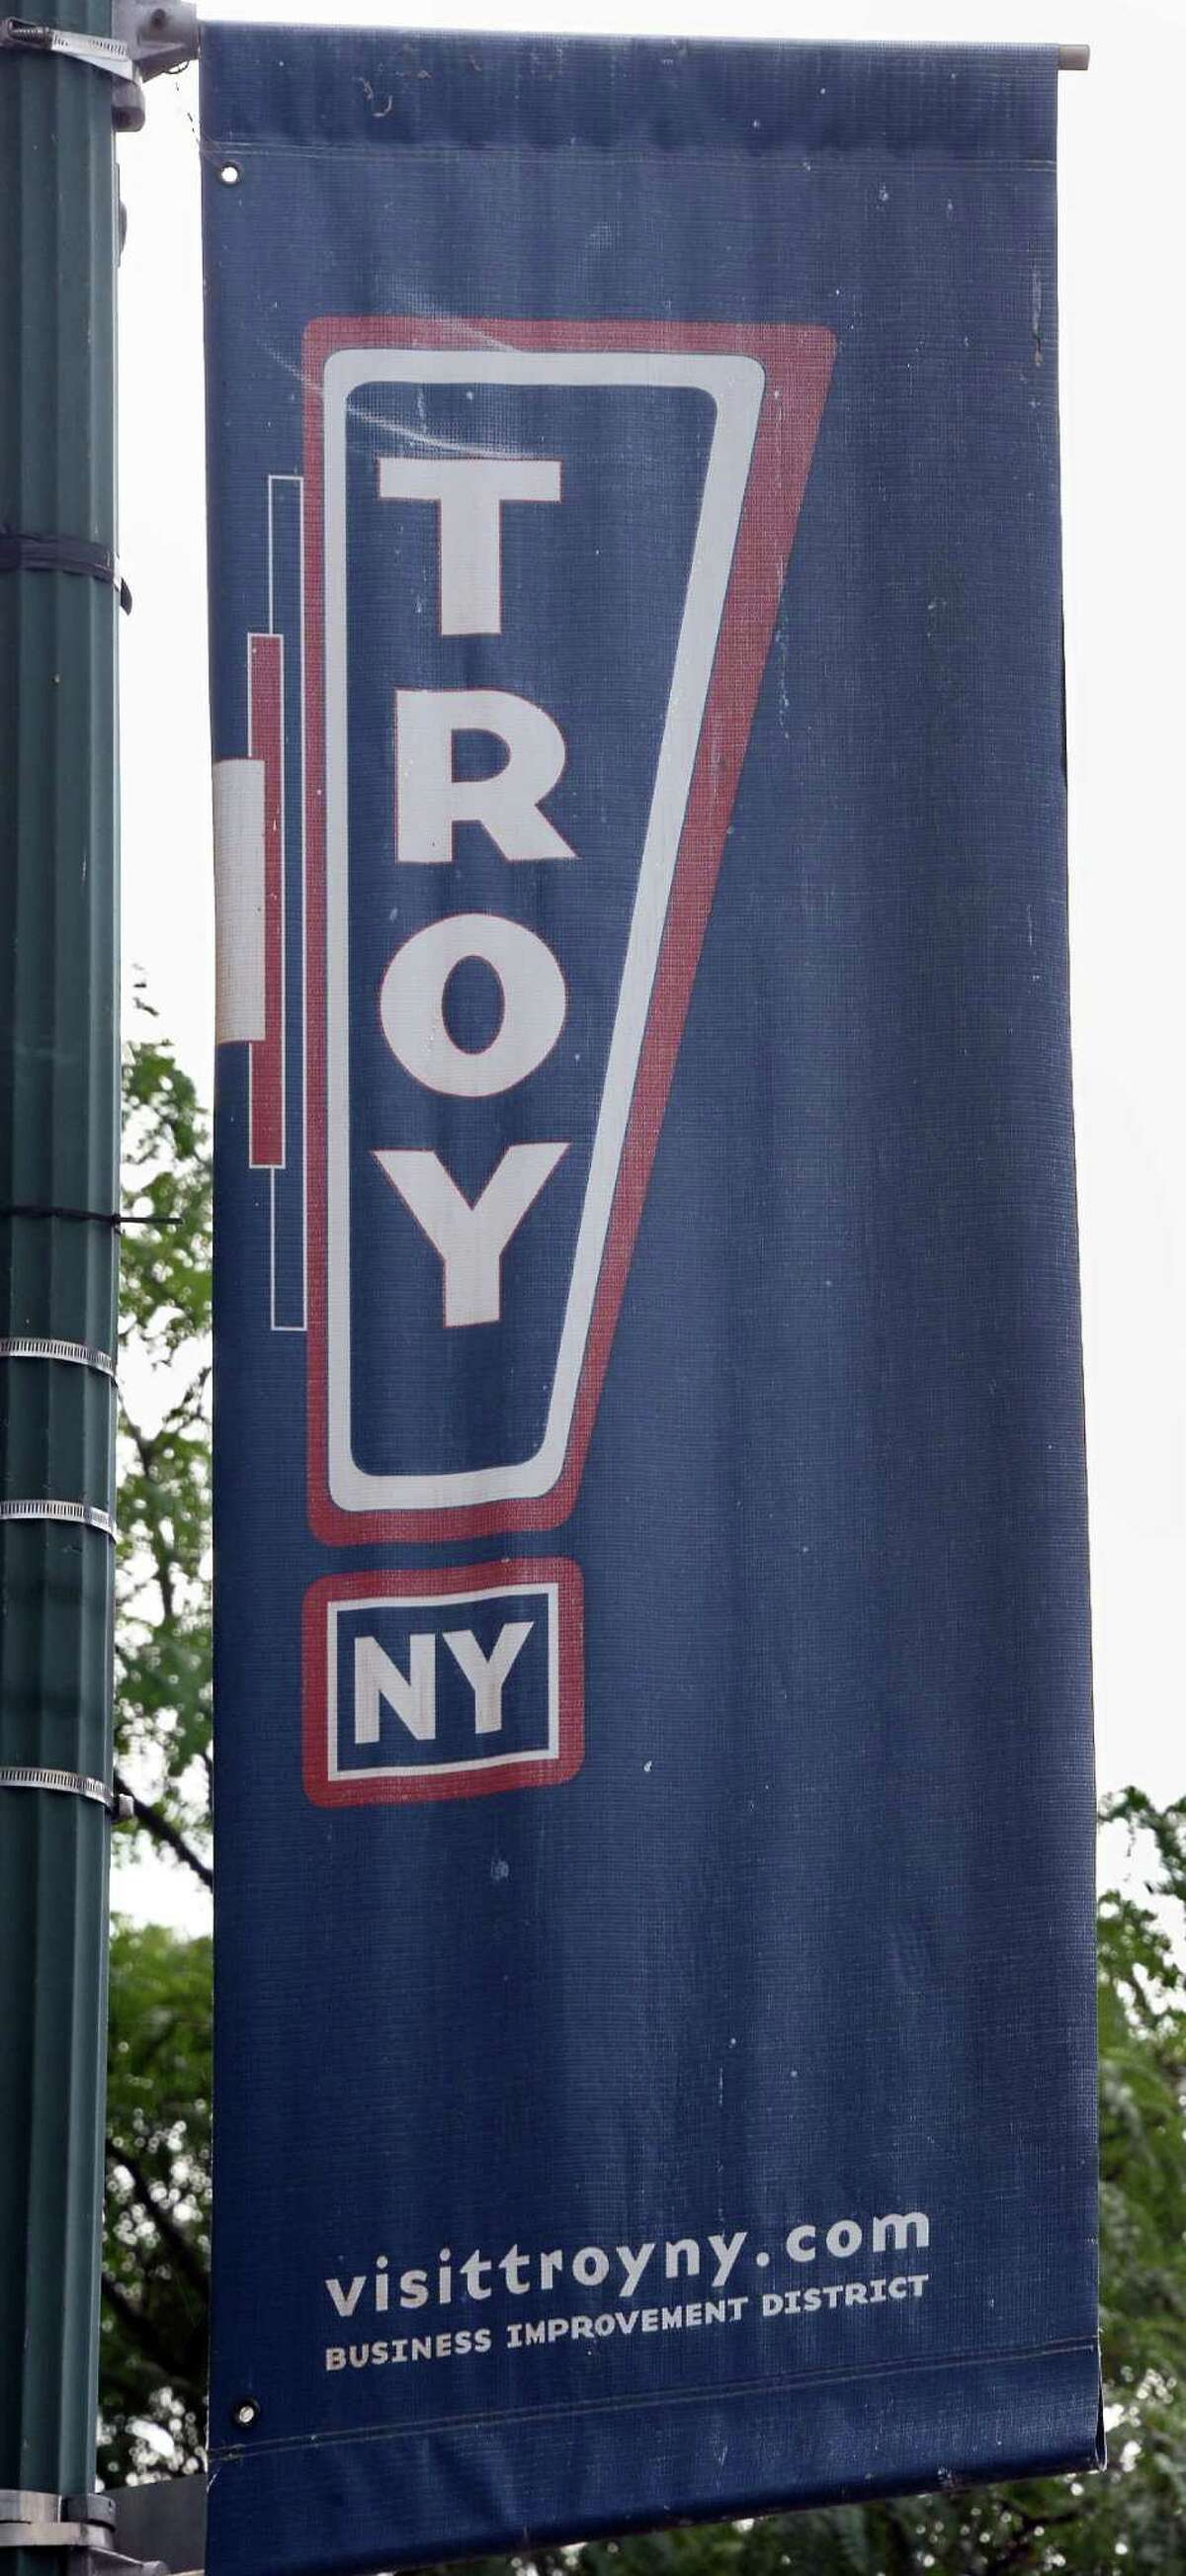 An old banner soon to be replaced by 100 new style street banners at Monument Square Friday Sept. 4, 2015 in Troy, NY. (John Carl D'Annibale / Times Union)